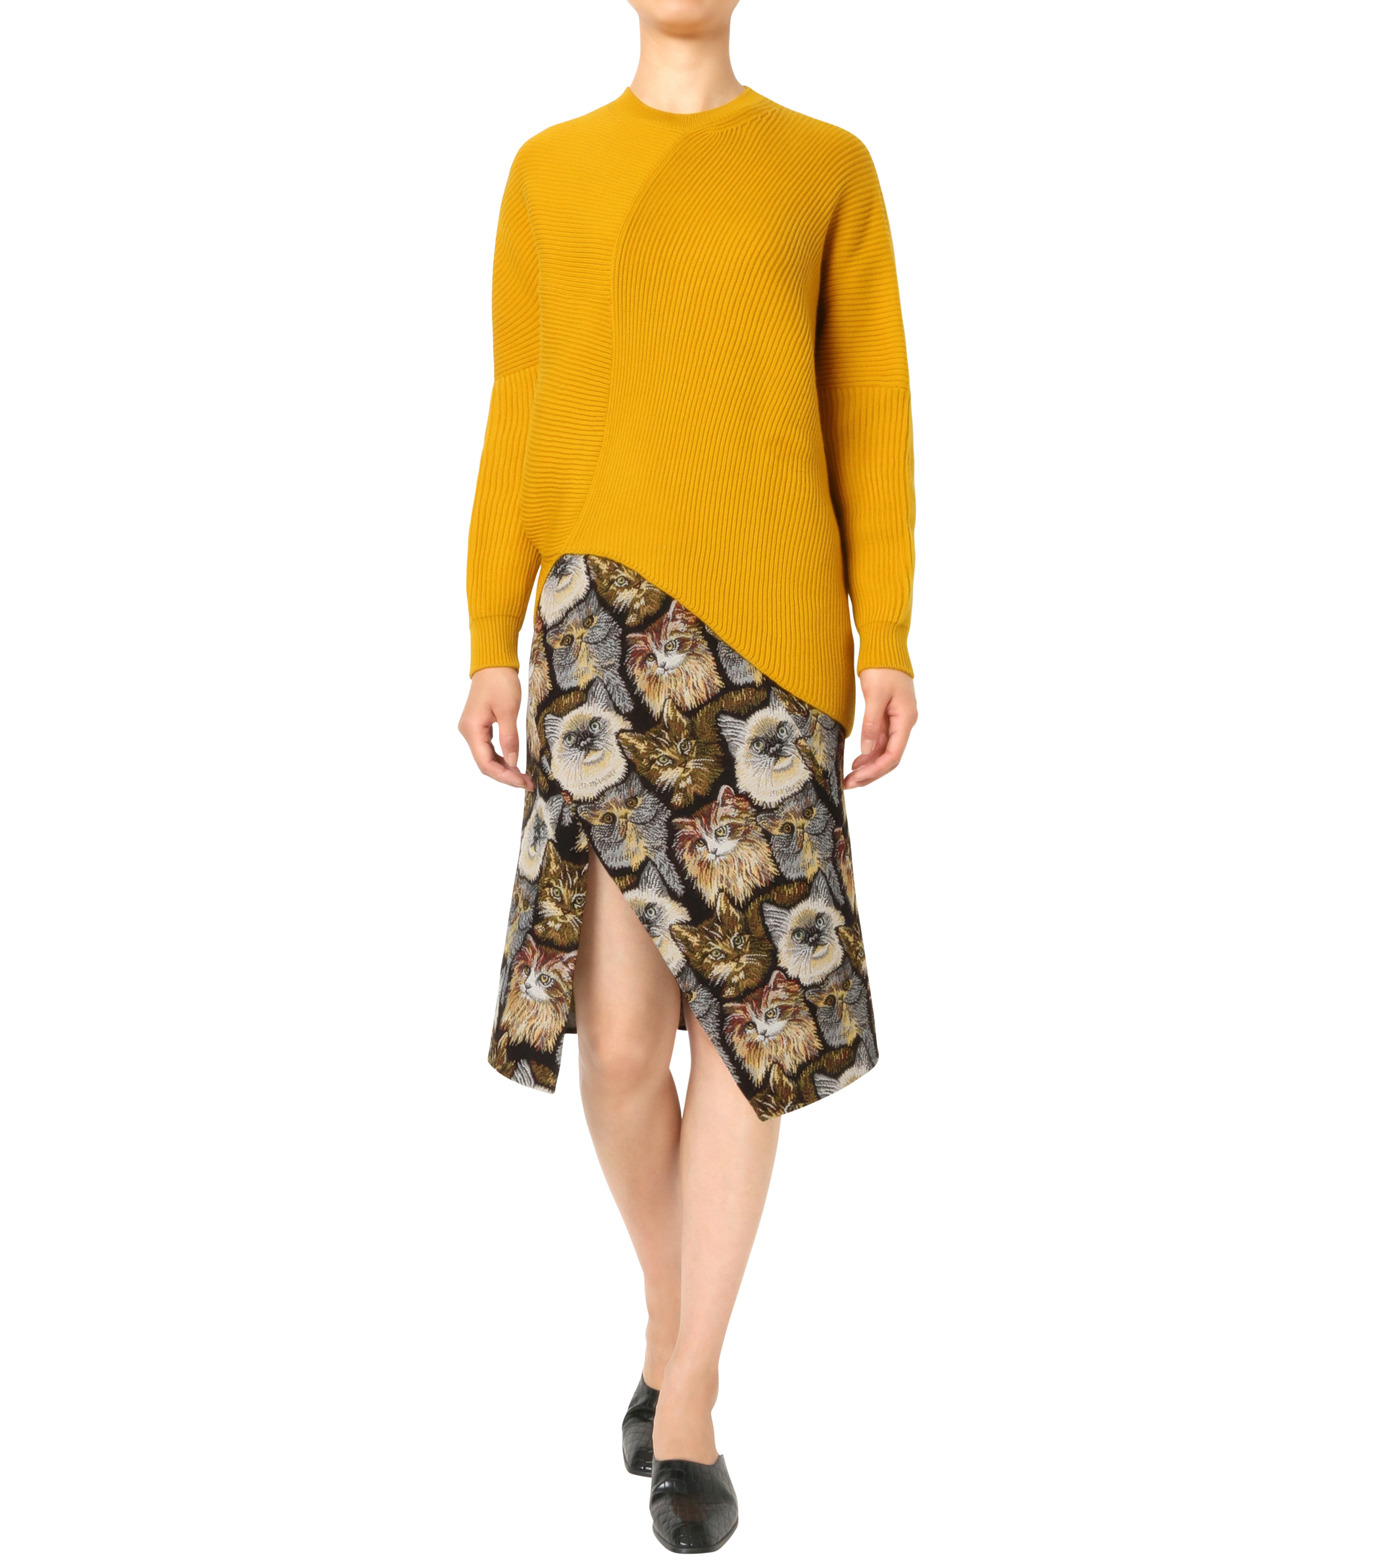 Stella McCartney(ステラマッカートニー)のClean Ribs Crew Neck Jumper-YELLOW(ニット/knit)-431737-S1672-32 拡大詳細画像3